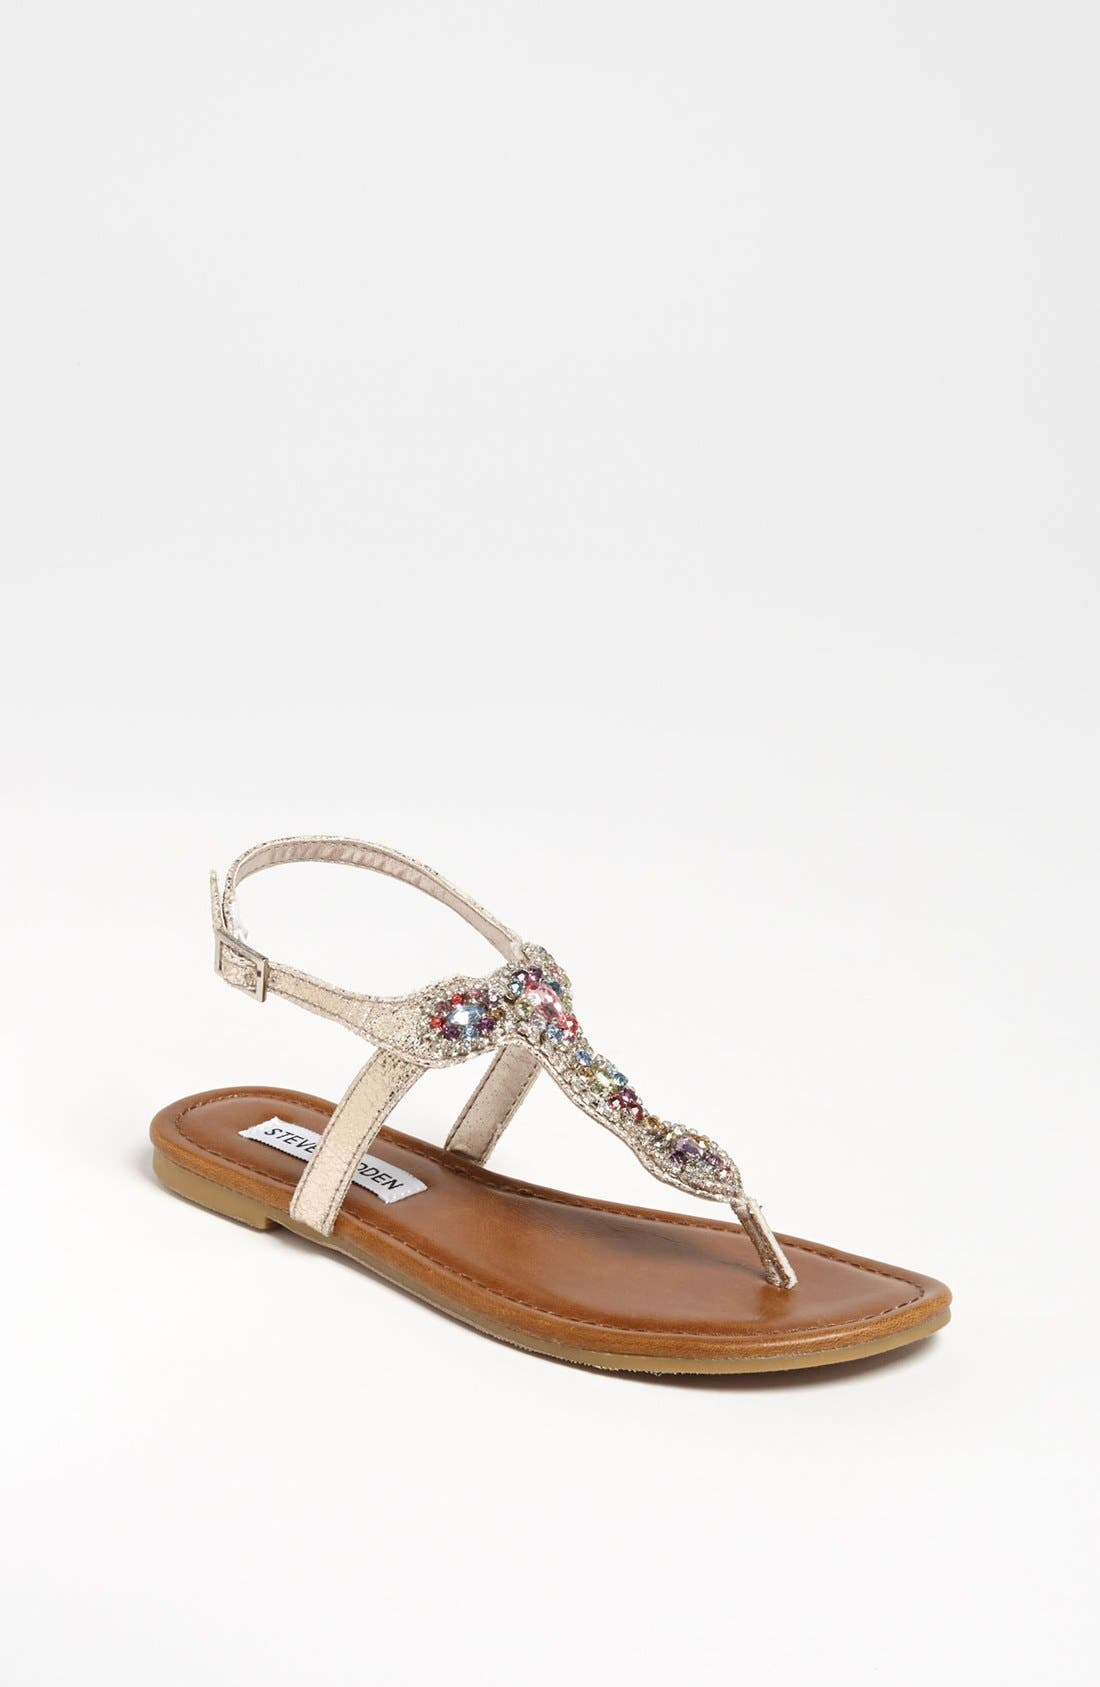 Main Image - Steve Madden 'Glare' Sandal (Toddler, Little Kid & Big Kid)